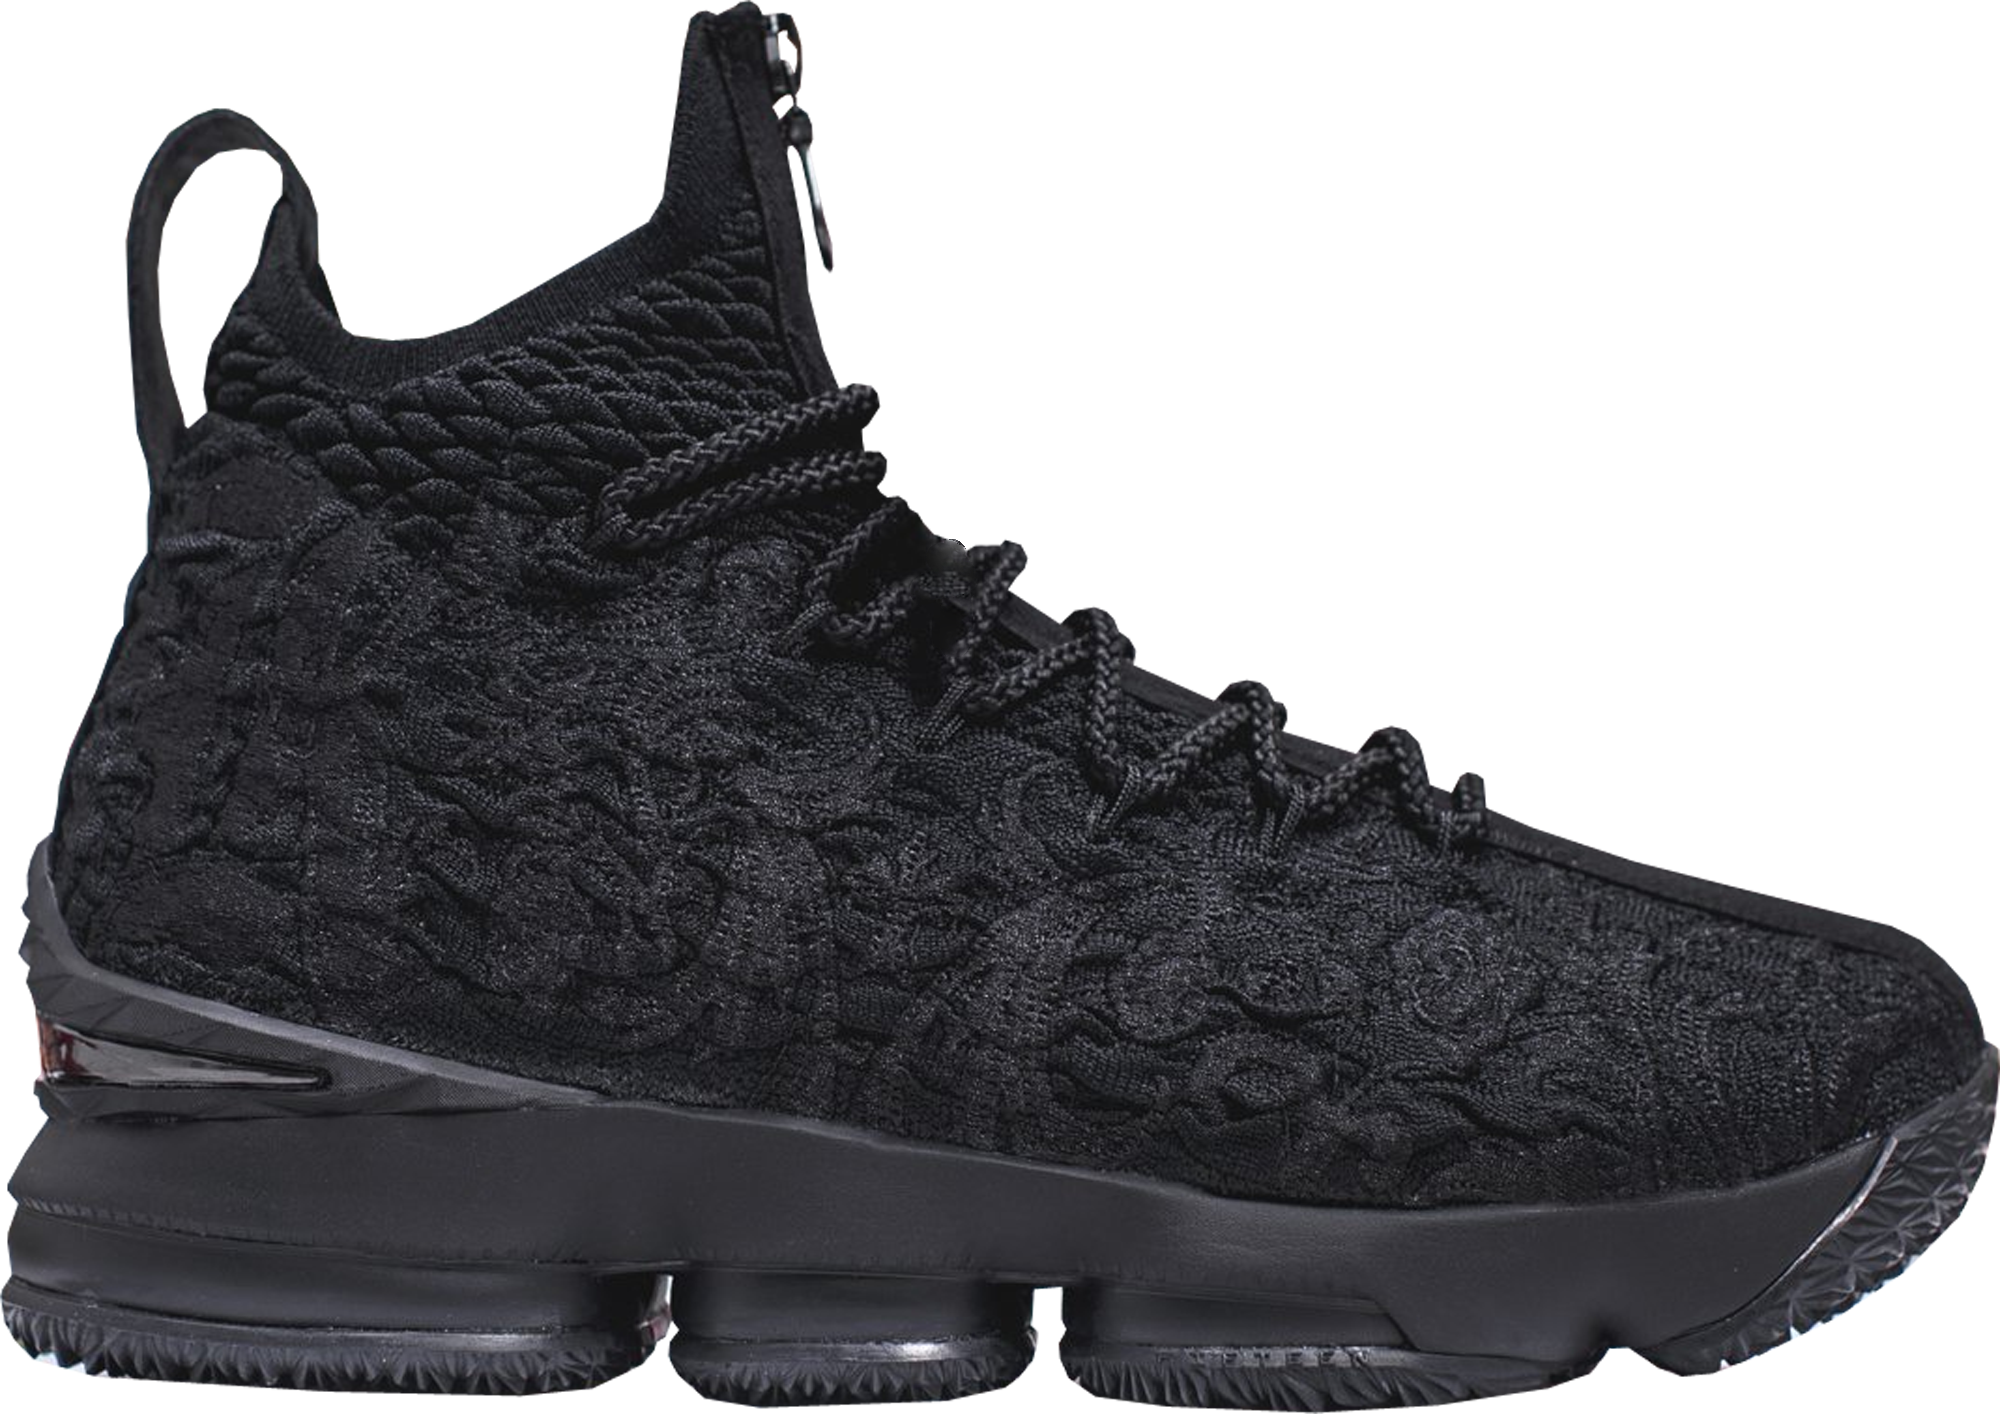 a5d6b55495c1 Kith x Nike LeBron 15 Performance Suit Of Armor